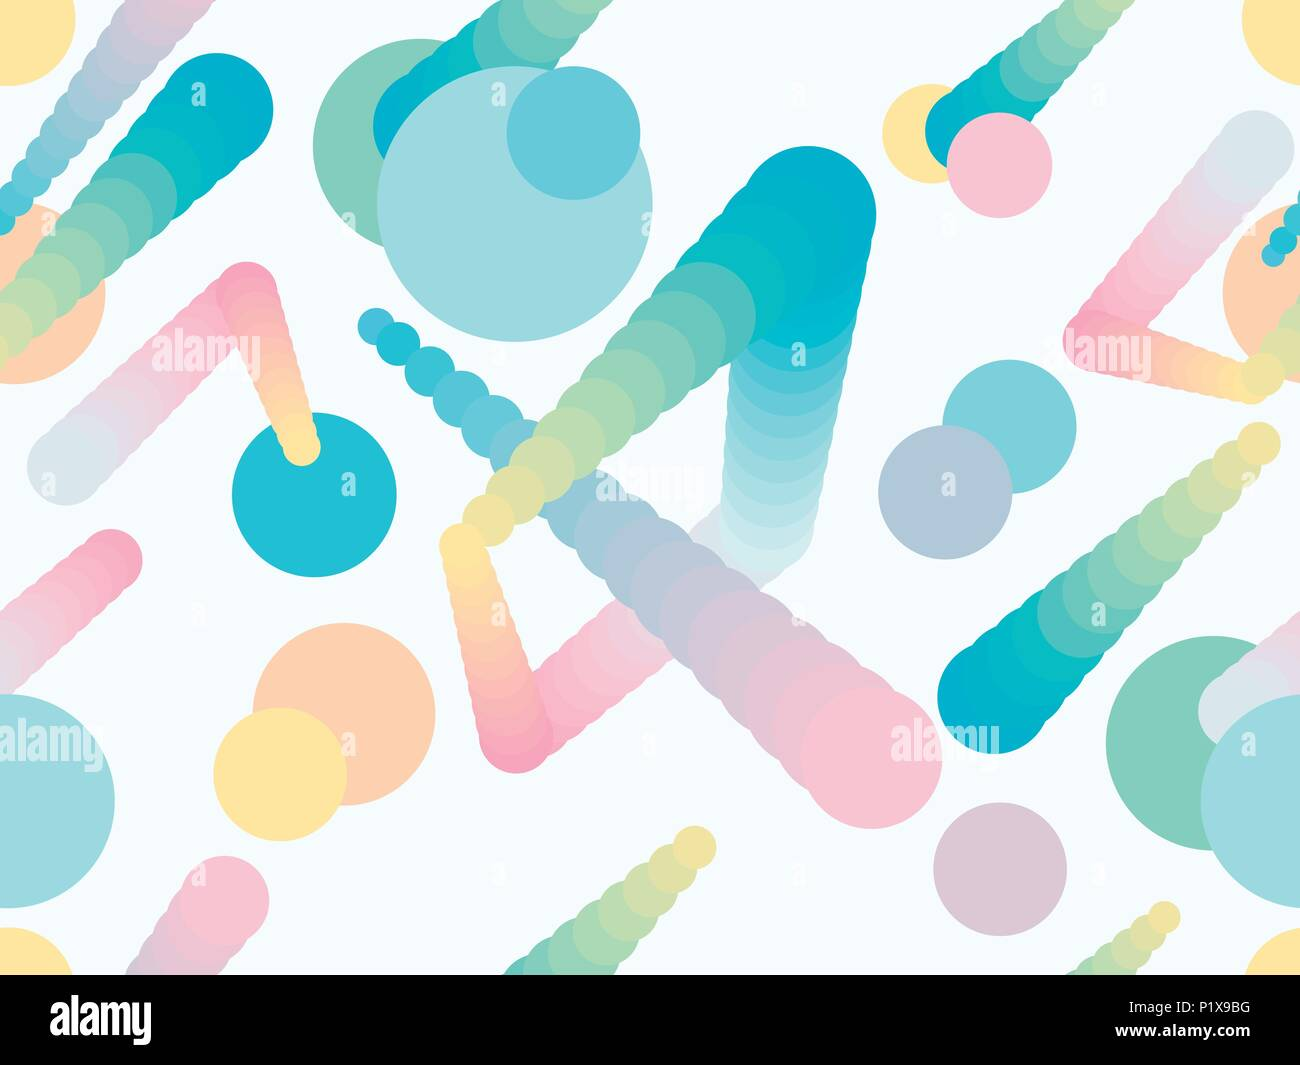 07c7be531c7a5 Liquid color shape seamless pattern. Geometric elements memphis, style of  the 80s. Modern colorful objects. Vector illustration